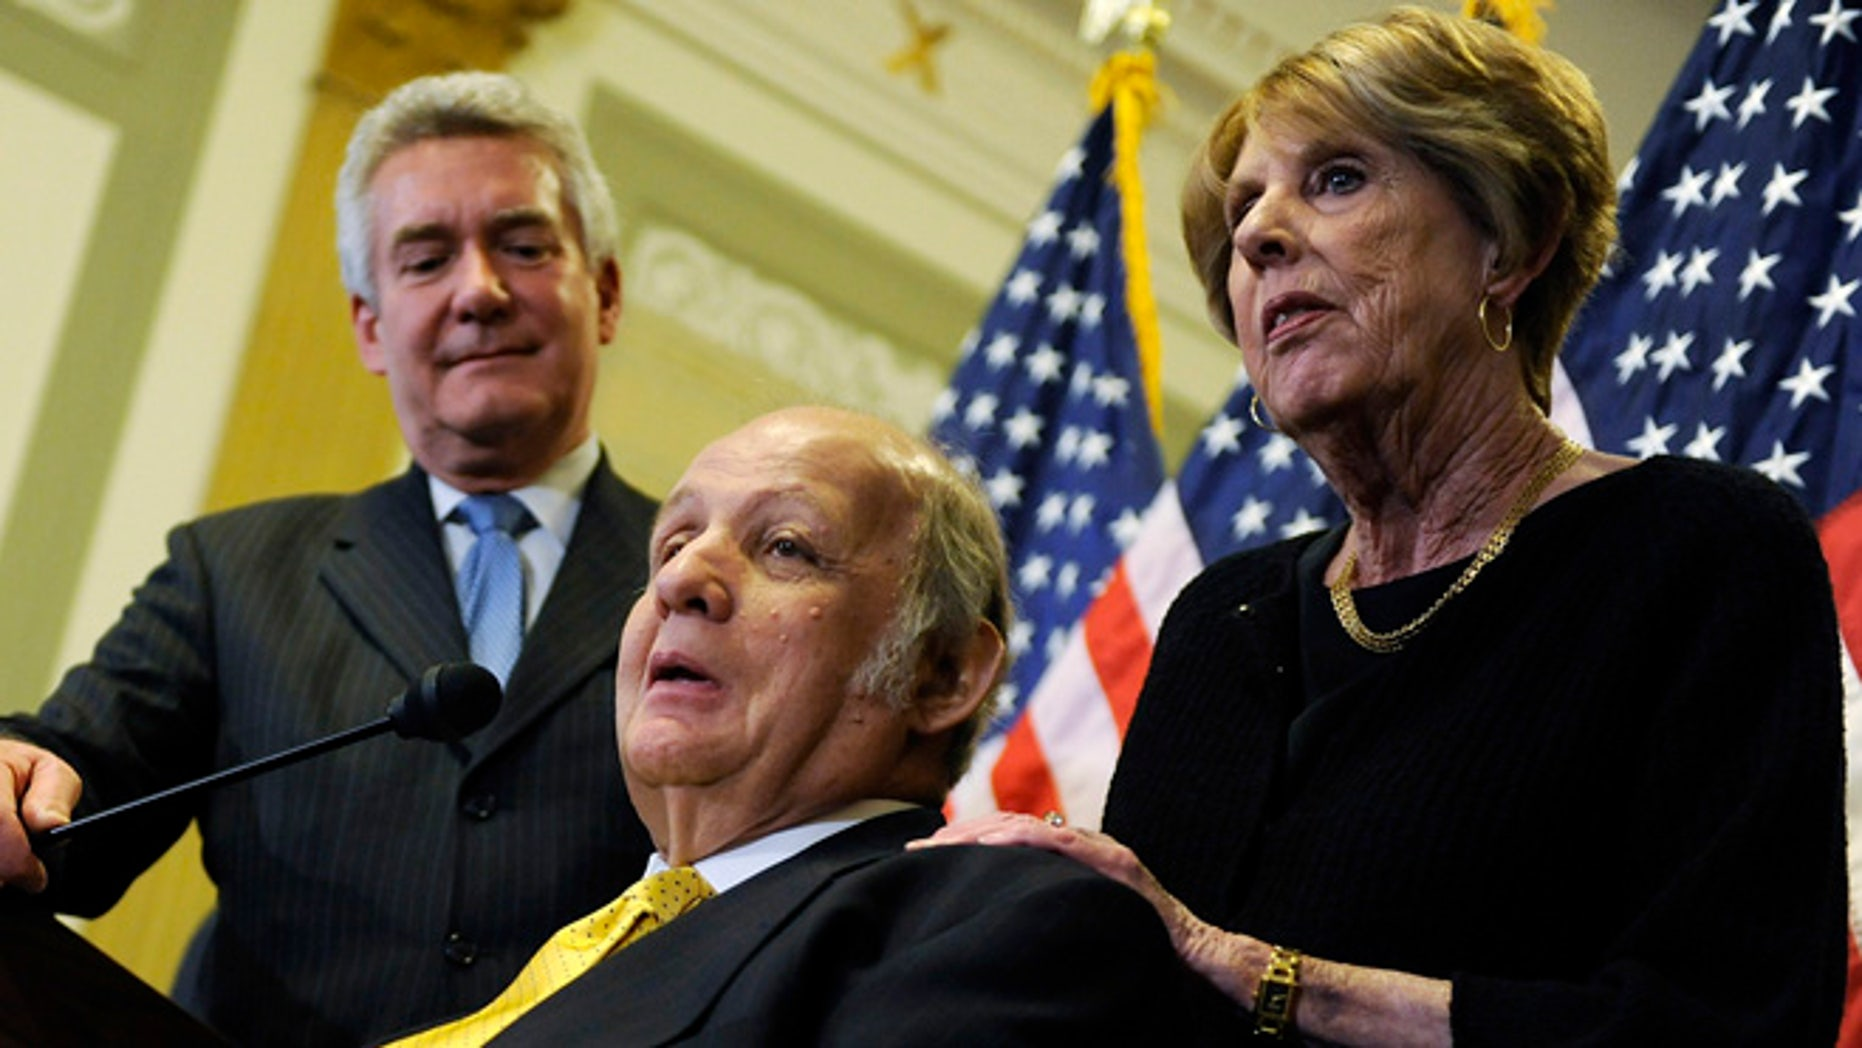 Mar. 30, 2011: James Brady (C), former White House Press Secretary under Ronald Reagan, makes remarks with his wife Sarah Brady (R) during a news conference to urge members of Congress for progress on gun control legislation, specifically passage of a ban on large-capacity ammunition clips, in Washington. (Reuters)